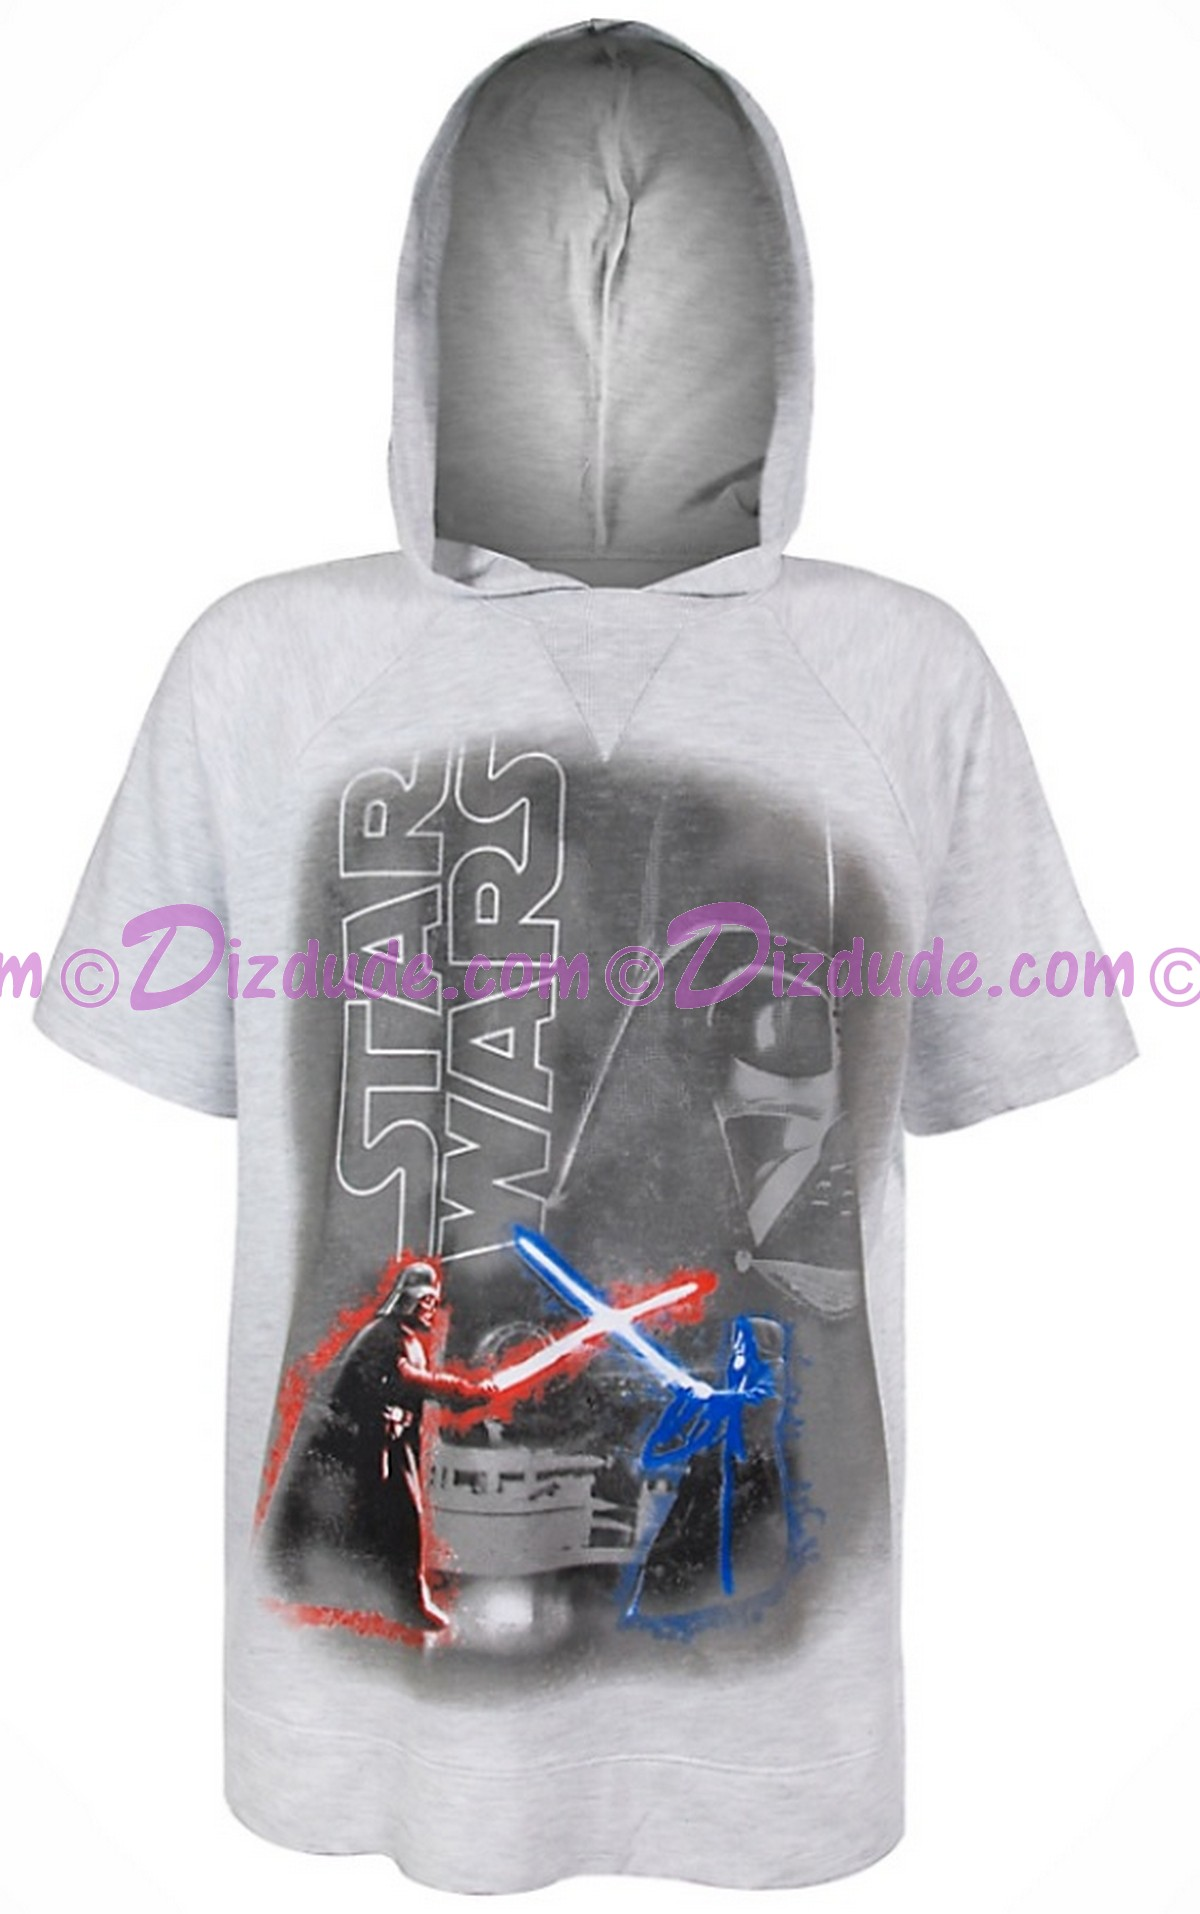 Disney Star Wars Darth Vader Adult Hooded T-Shirt (Tshirt, T shirt or Tee) © Dizdude.com